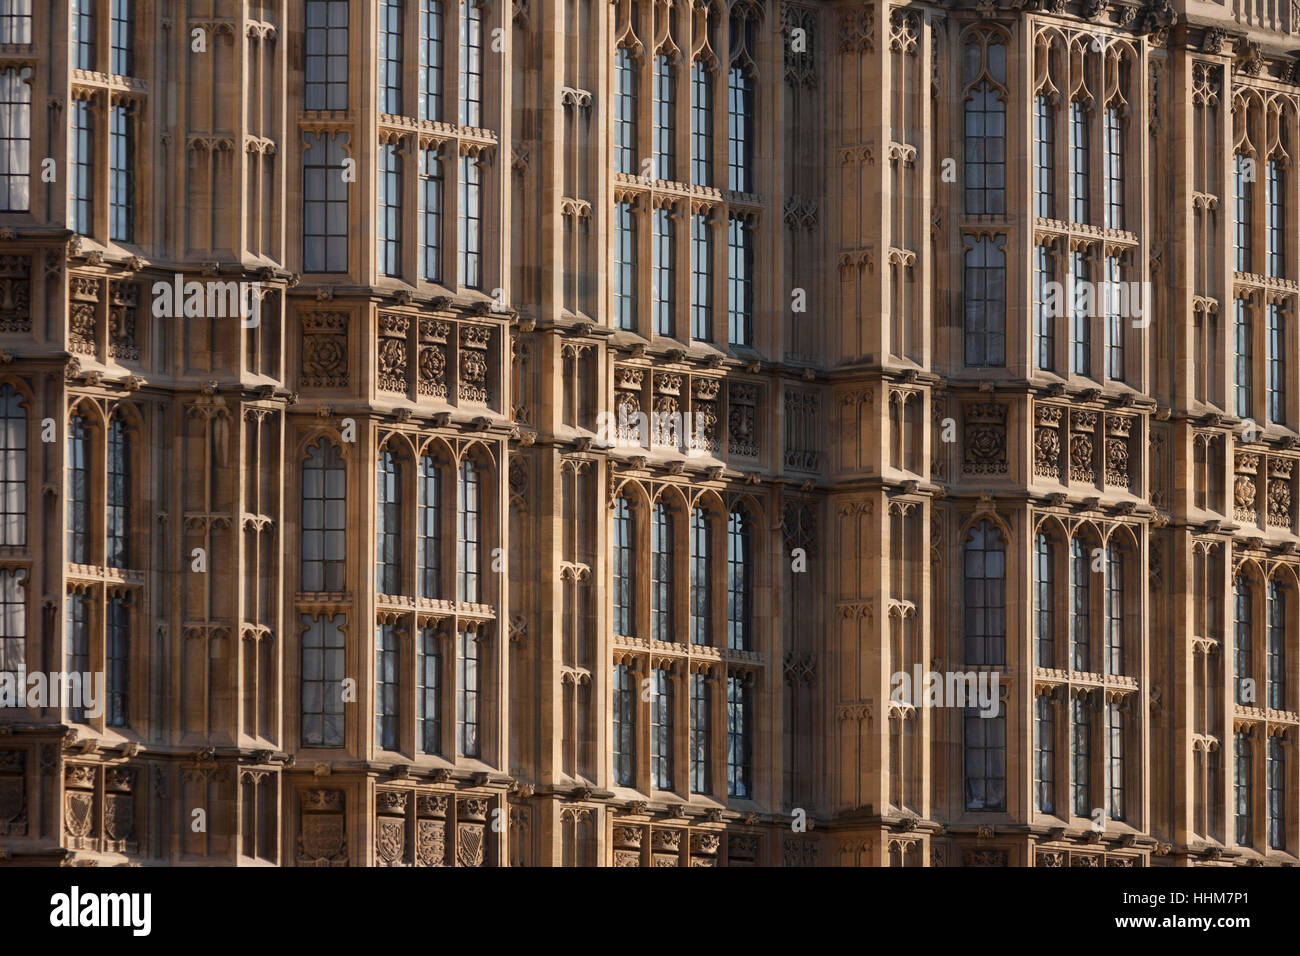 Exterior of windows and architecture of the Palace of Westinster, the seat of the British parliament and where its - Stock Image